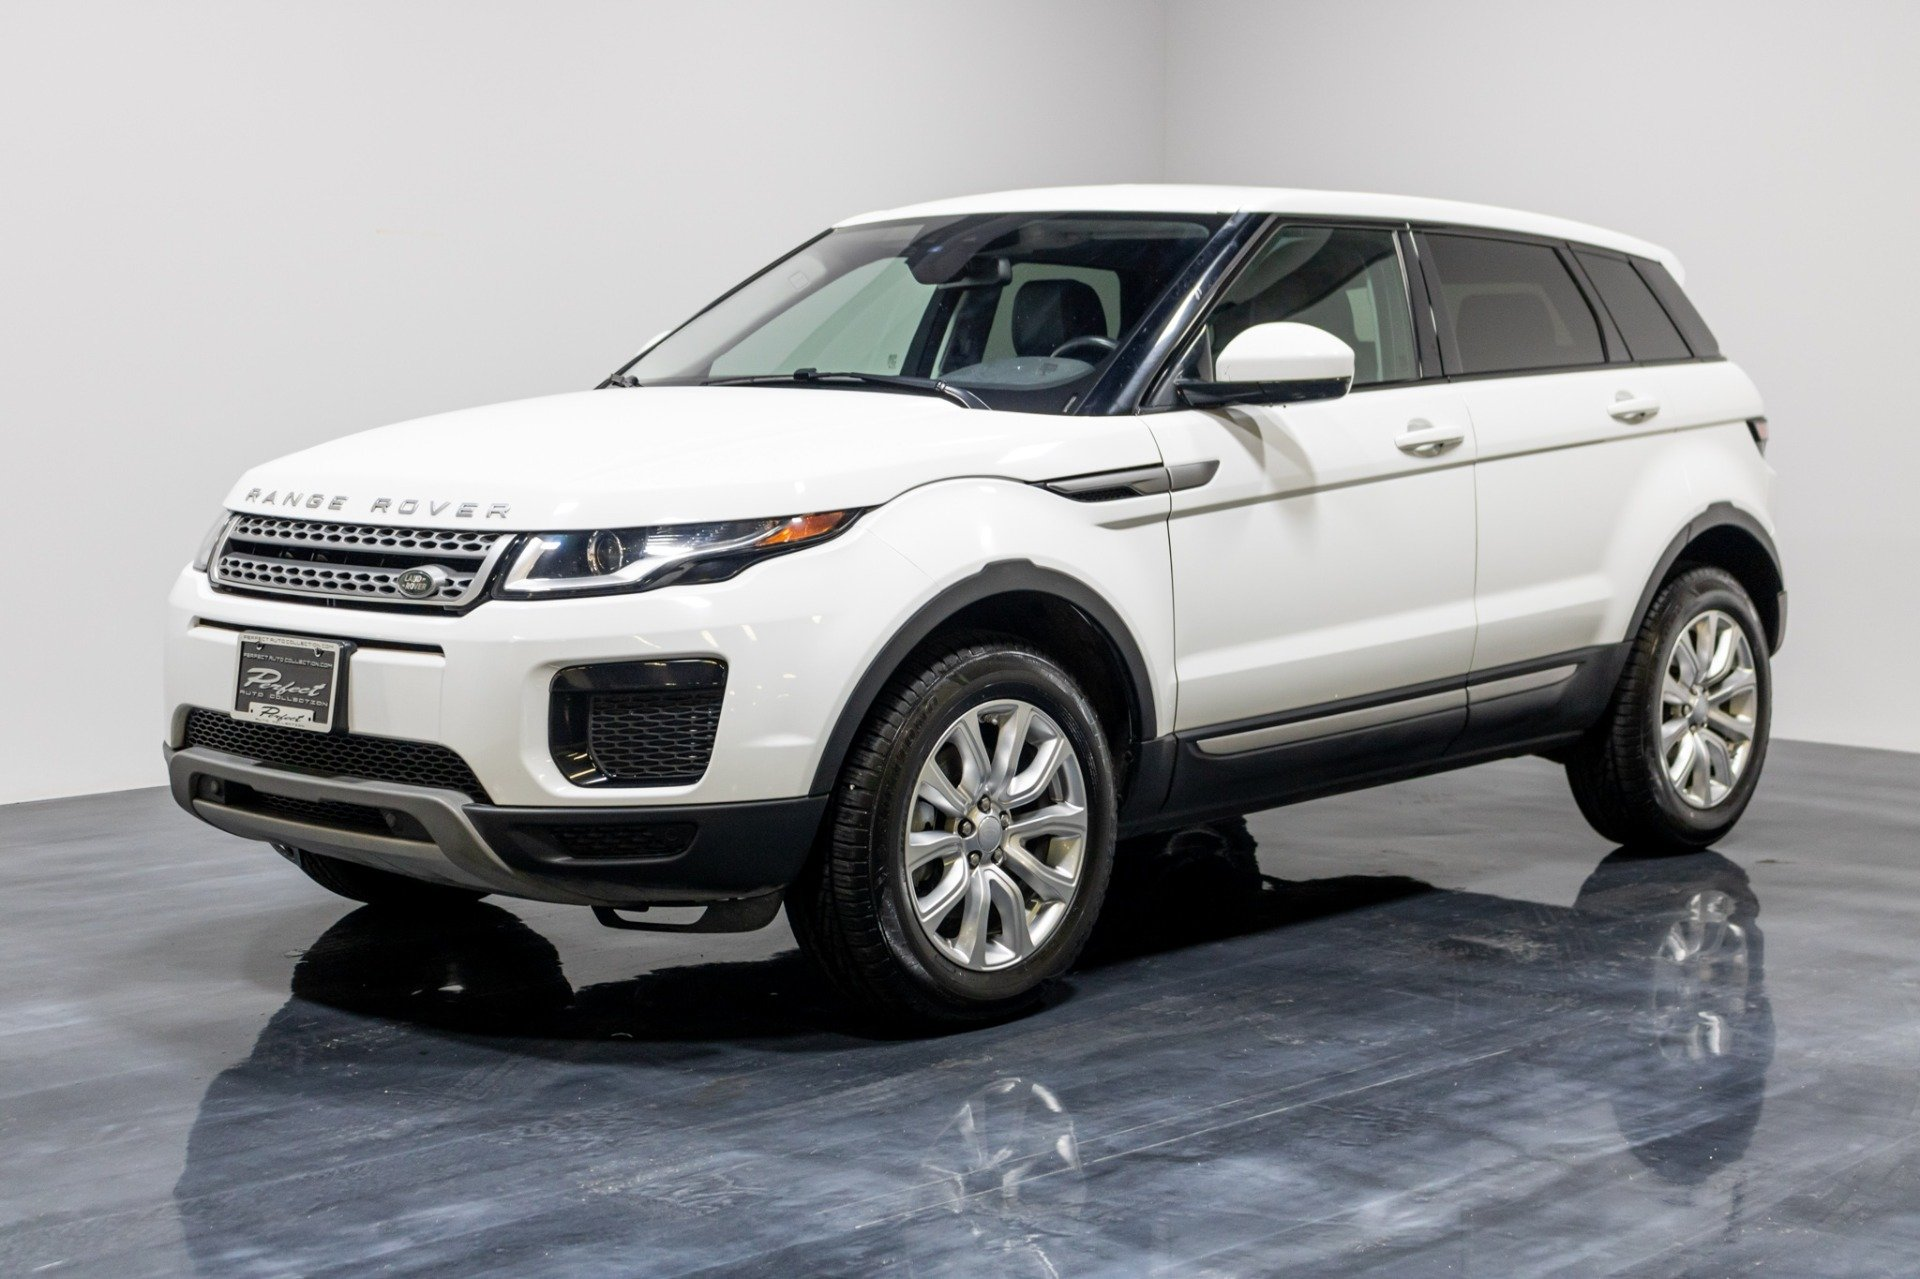 Used 2018 Land Rover Range Rover Evoque SE Sport Utility 4D for sale Sold at Perfect Auto Collection in Akron OH 44310 1